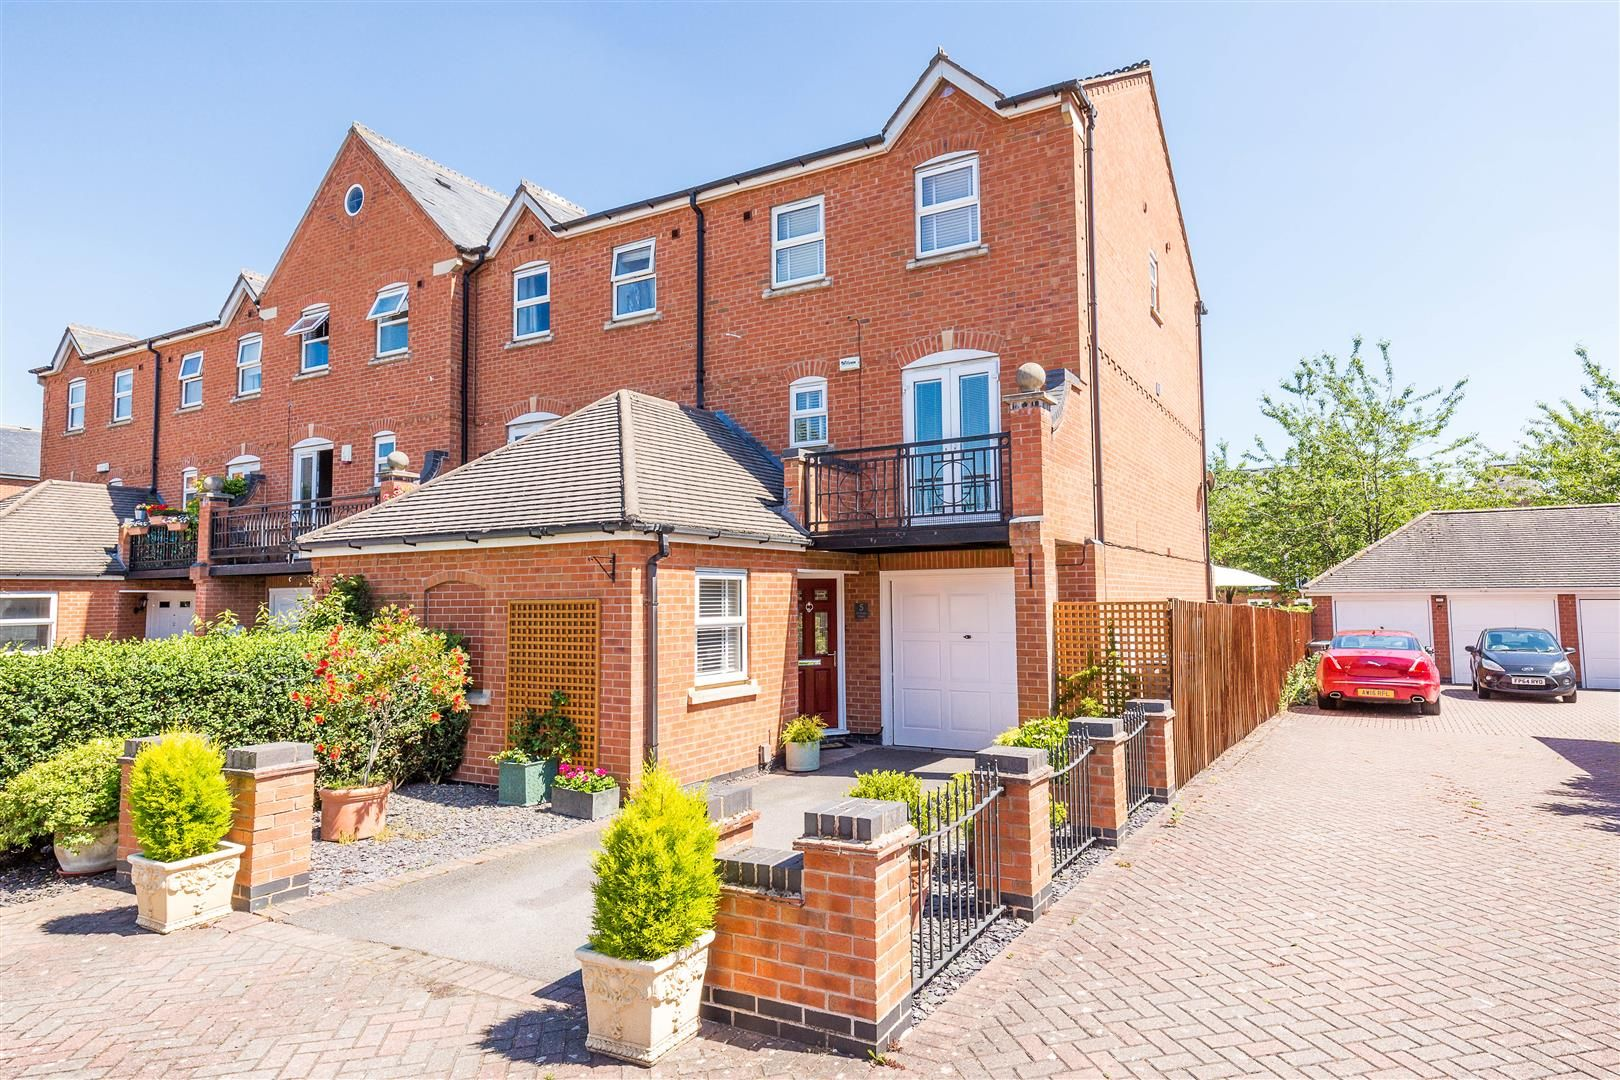 Property photo 1 of 14. 5 Chelsea Mews, Upper Saxondale, Radcliffe On Tren